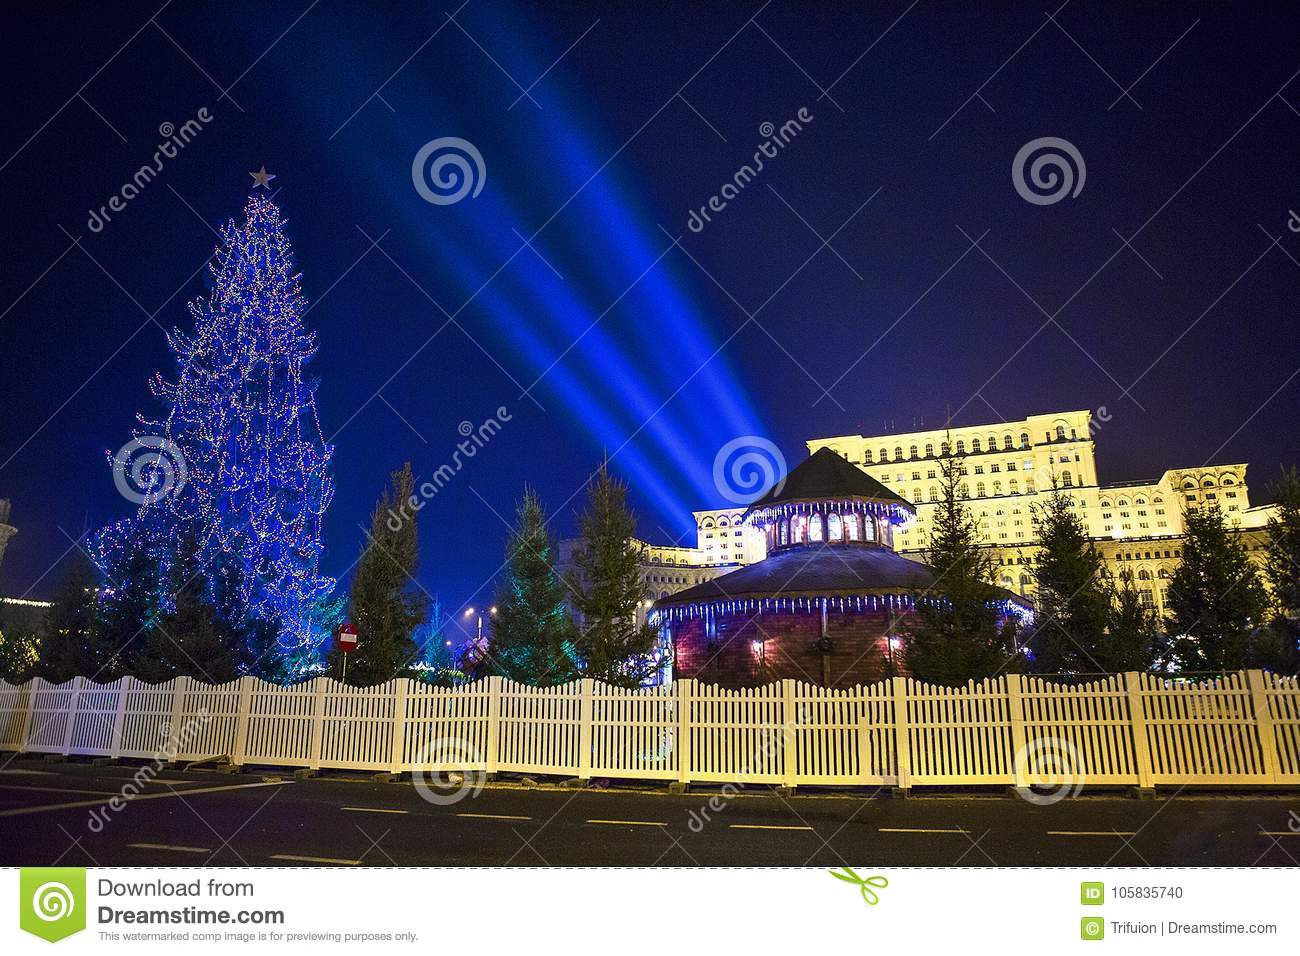 Christmas light - Bucharest House of Parliament